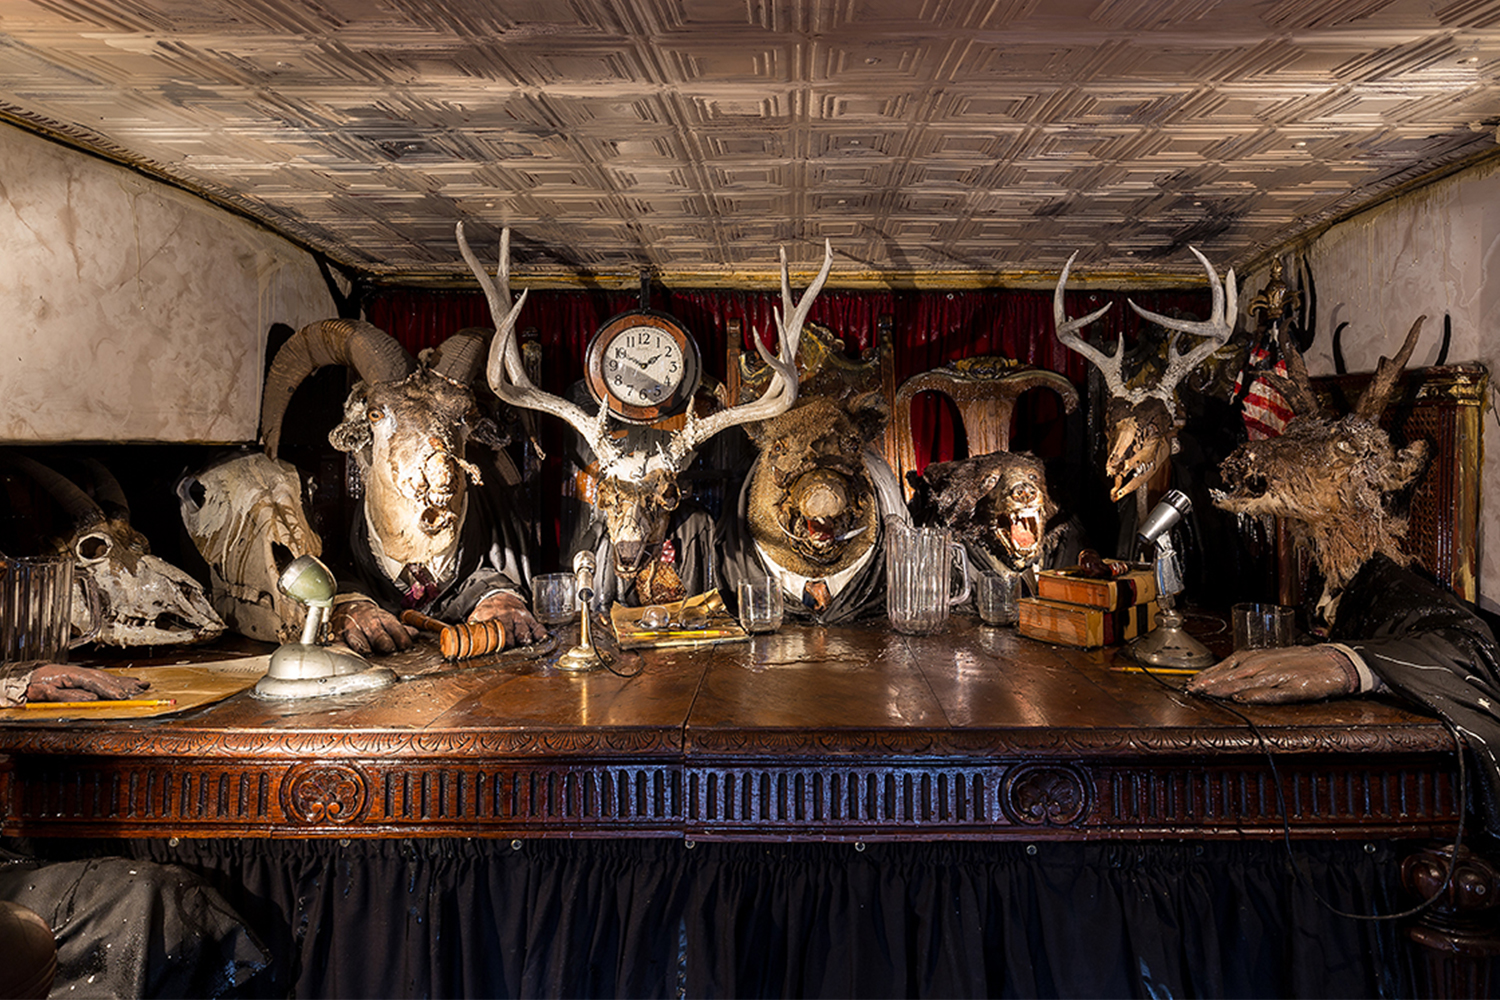 The Caddy Court by Kienholz